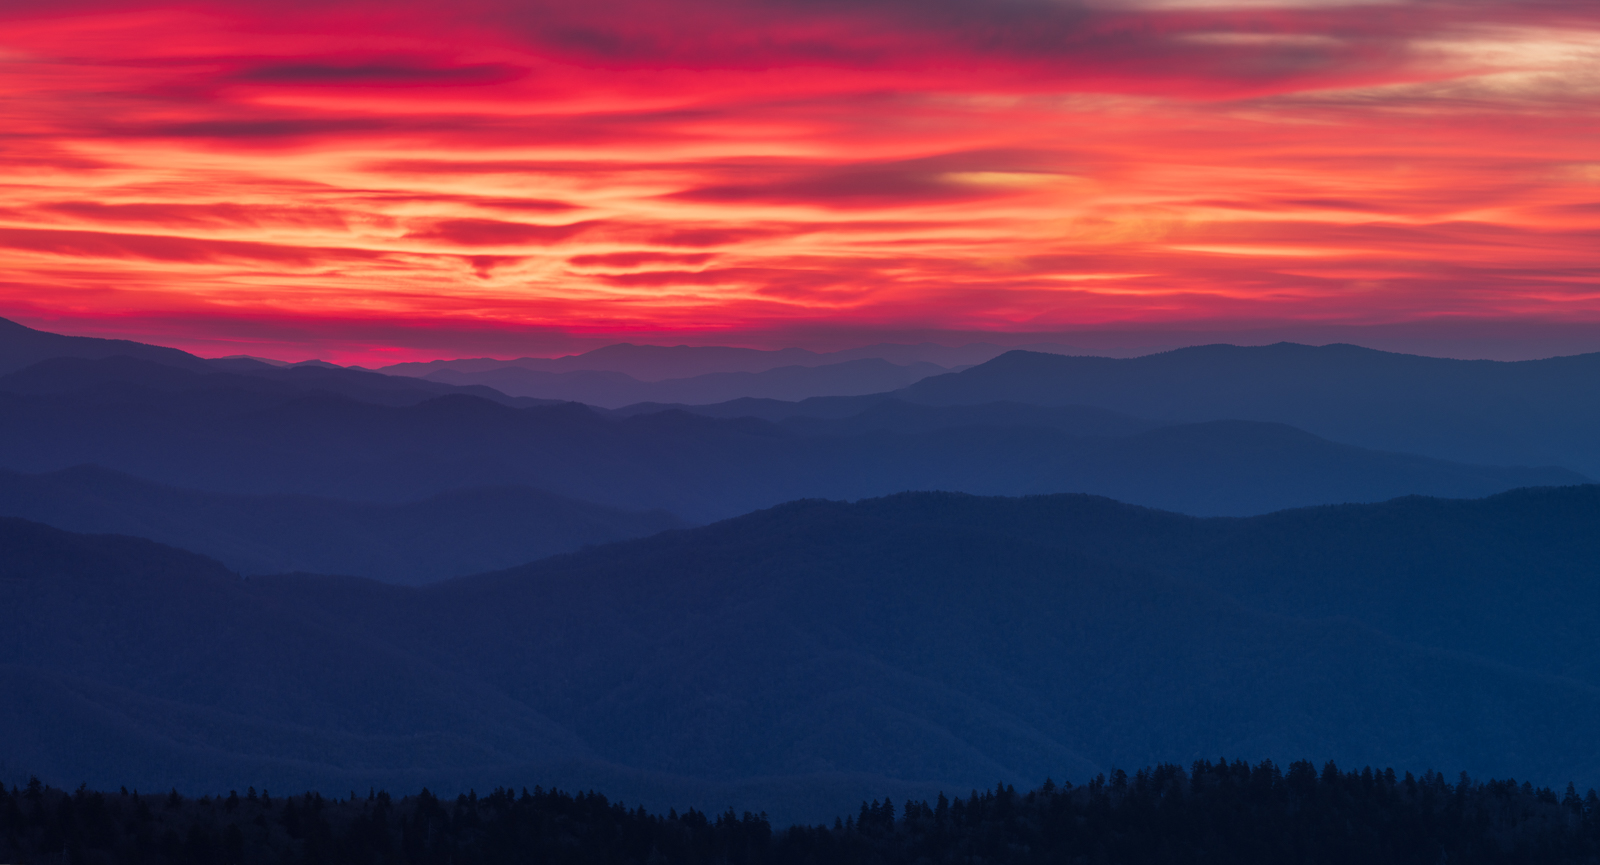 Sunrise over the Appalachian Moiuntains as seen from Clingmans Dome.